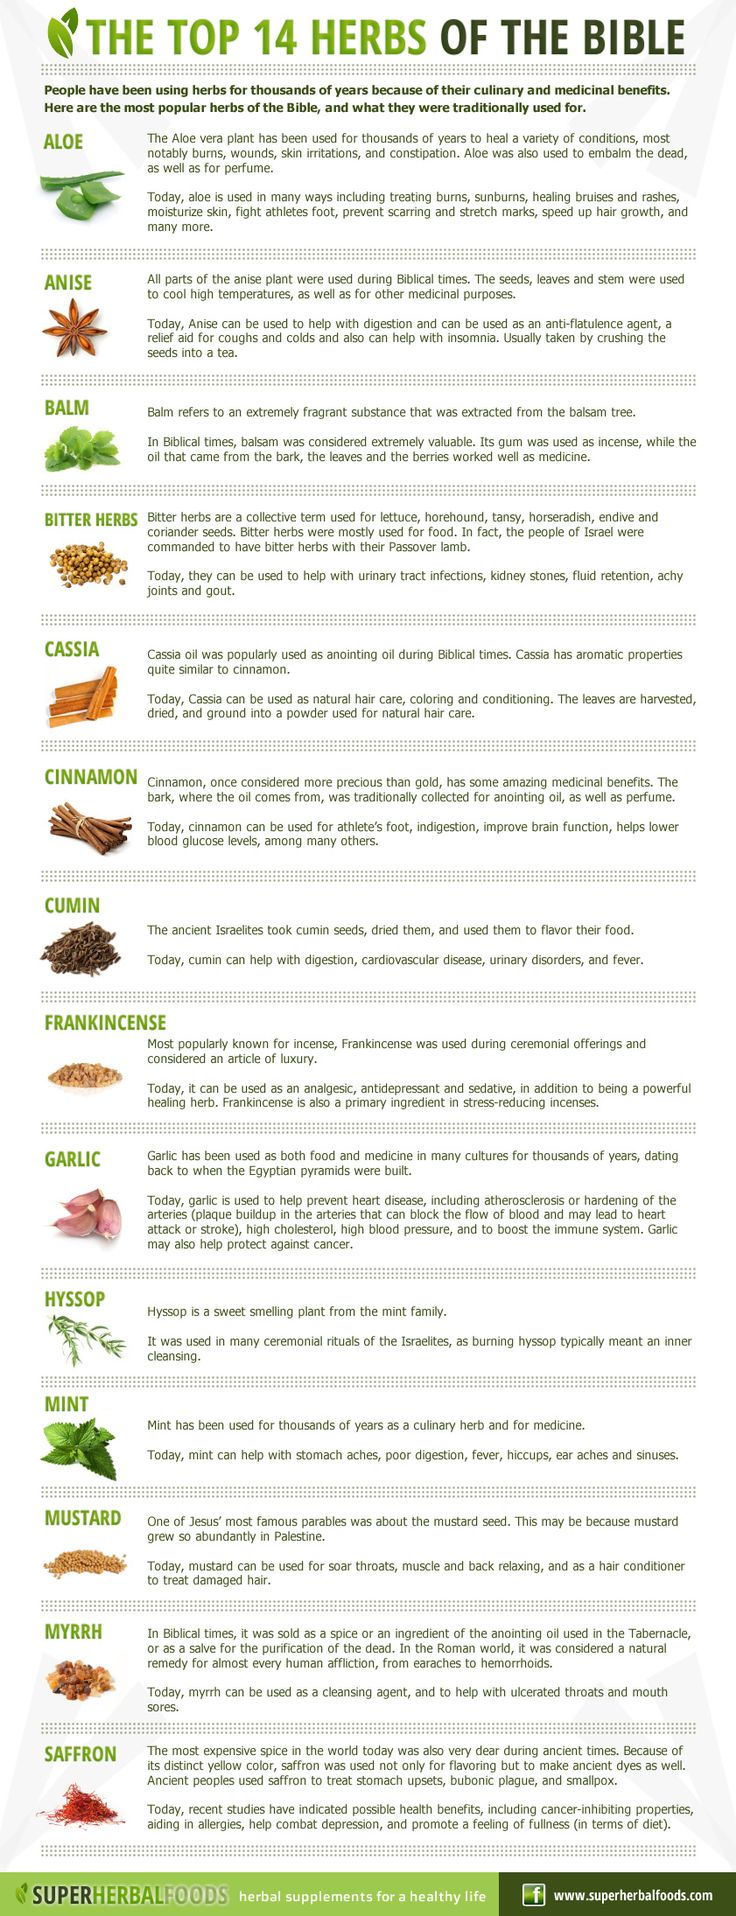 The top 14 herbs of the bible http://www.superherbalfoods.com/herbal-remedies/top-fourteen-herbs-of-the-bible.php